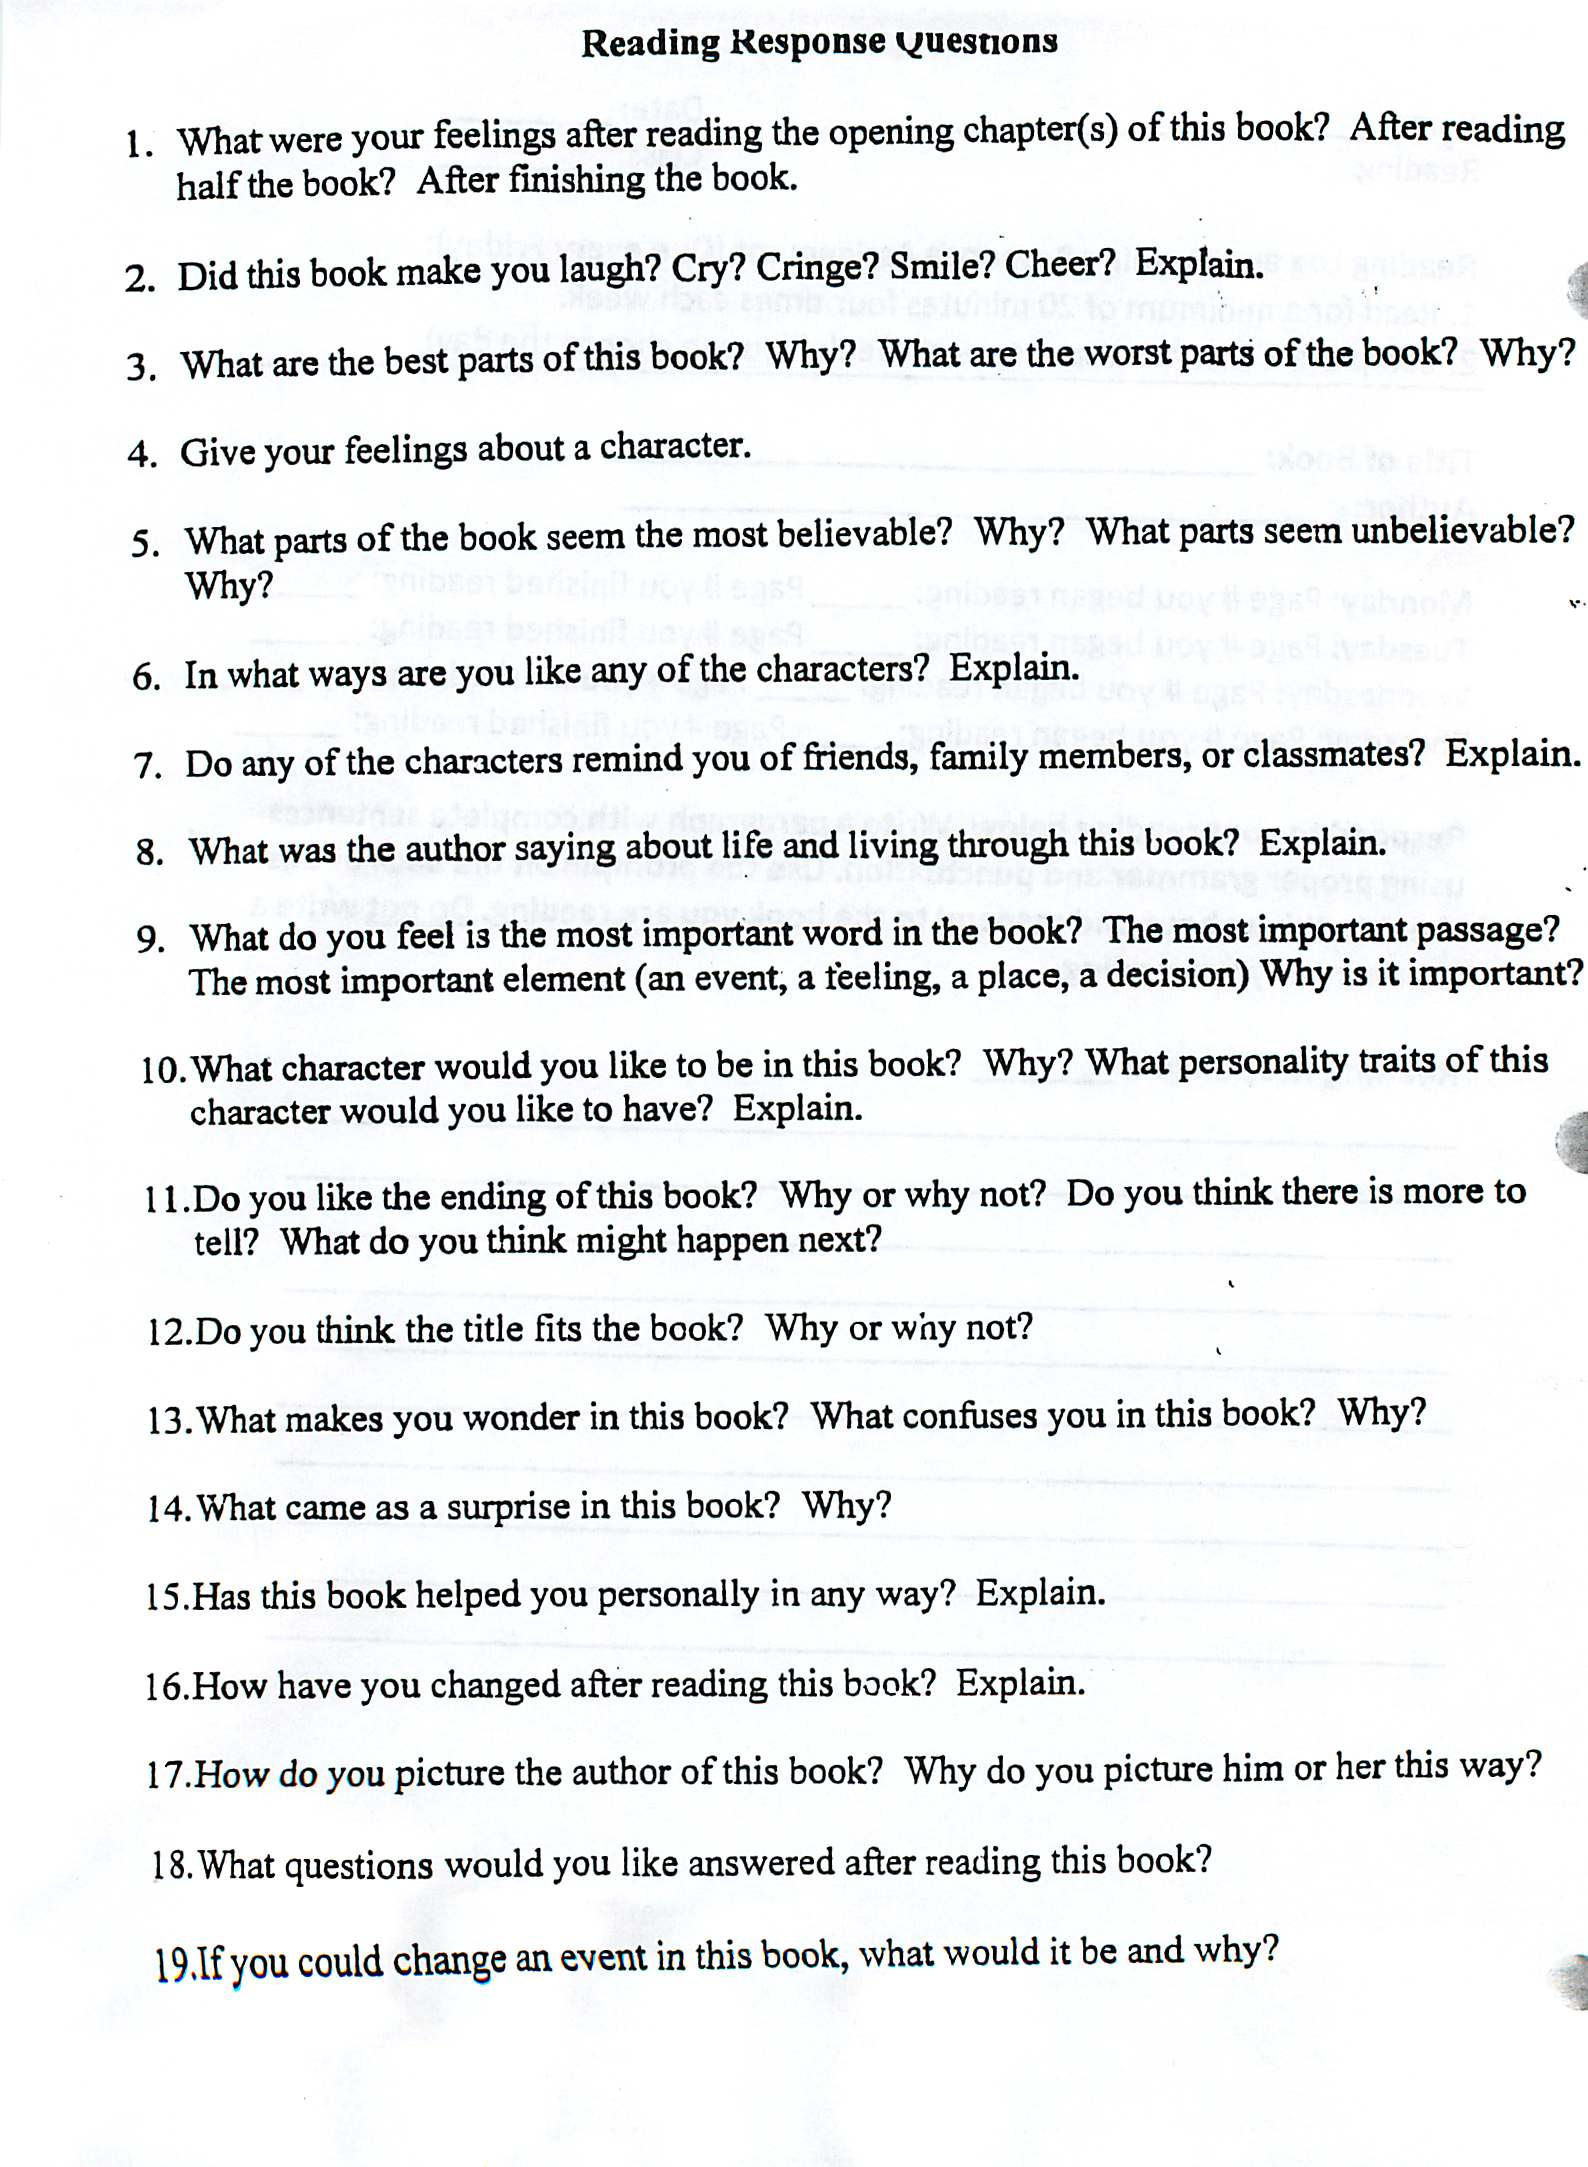 Worksheet Reading Questions pullen caran parallel curriculum english reference reading log paragraph questions